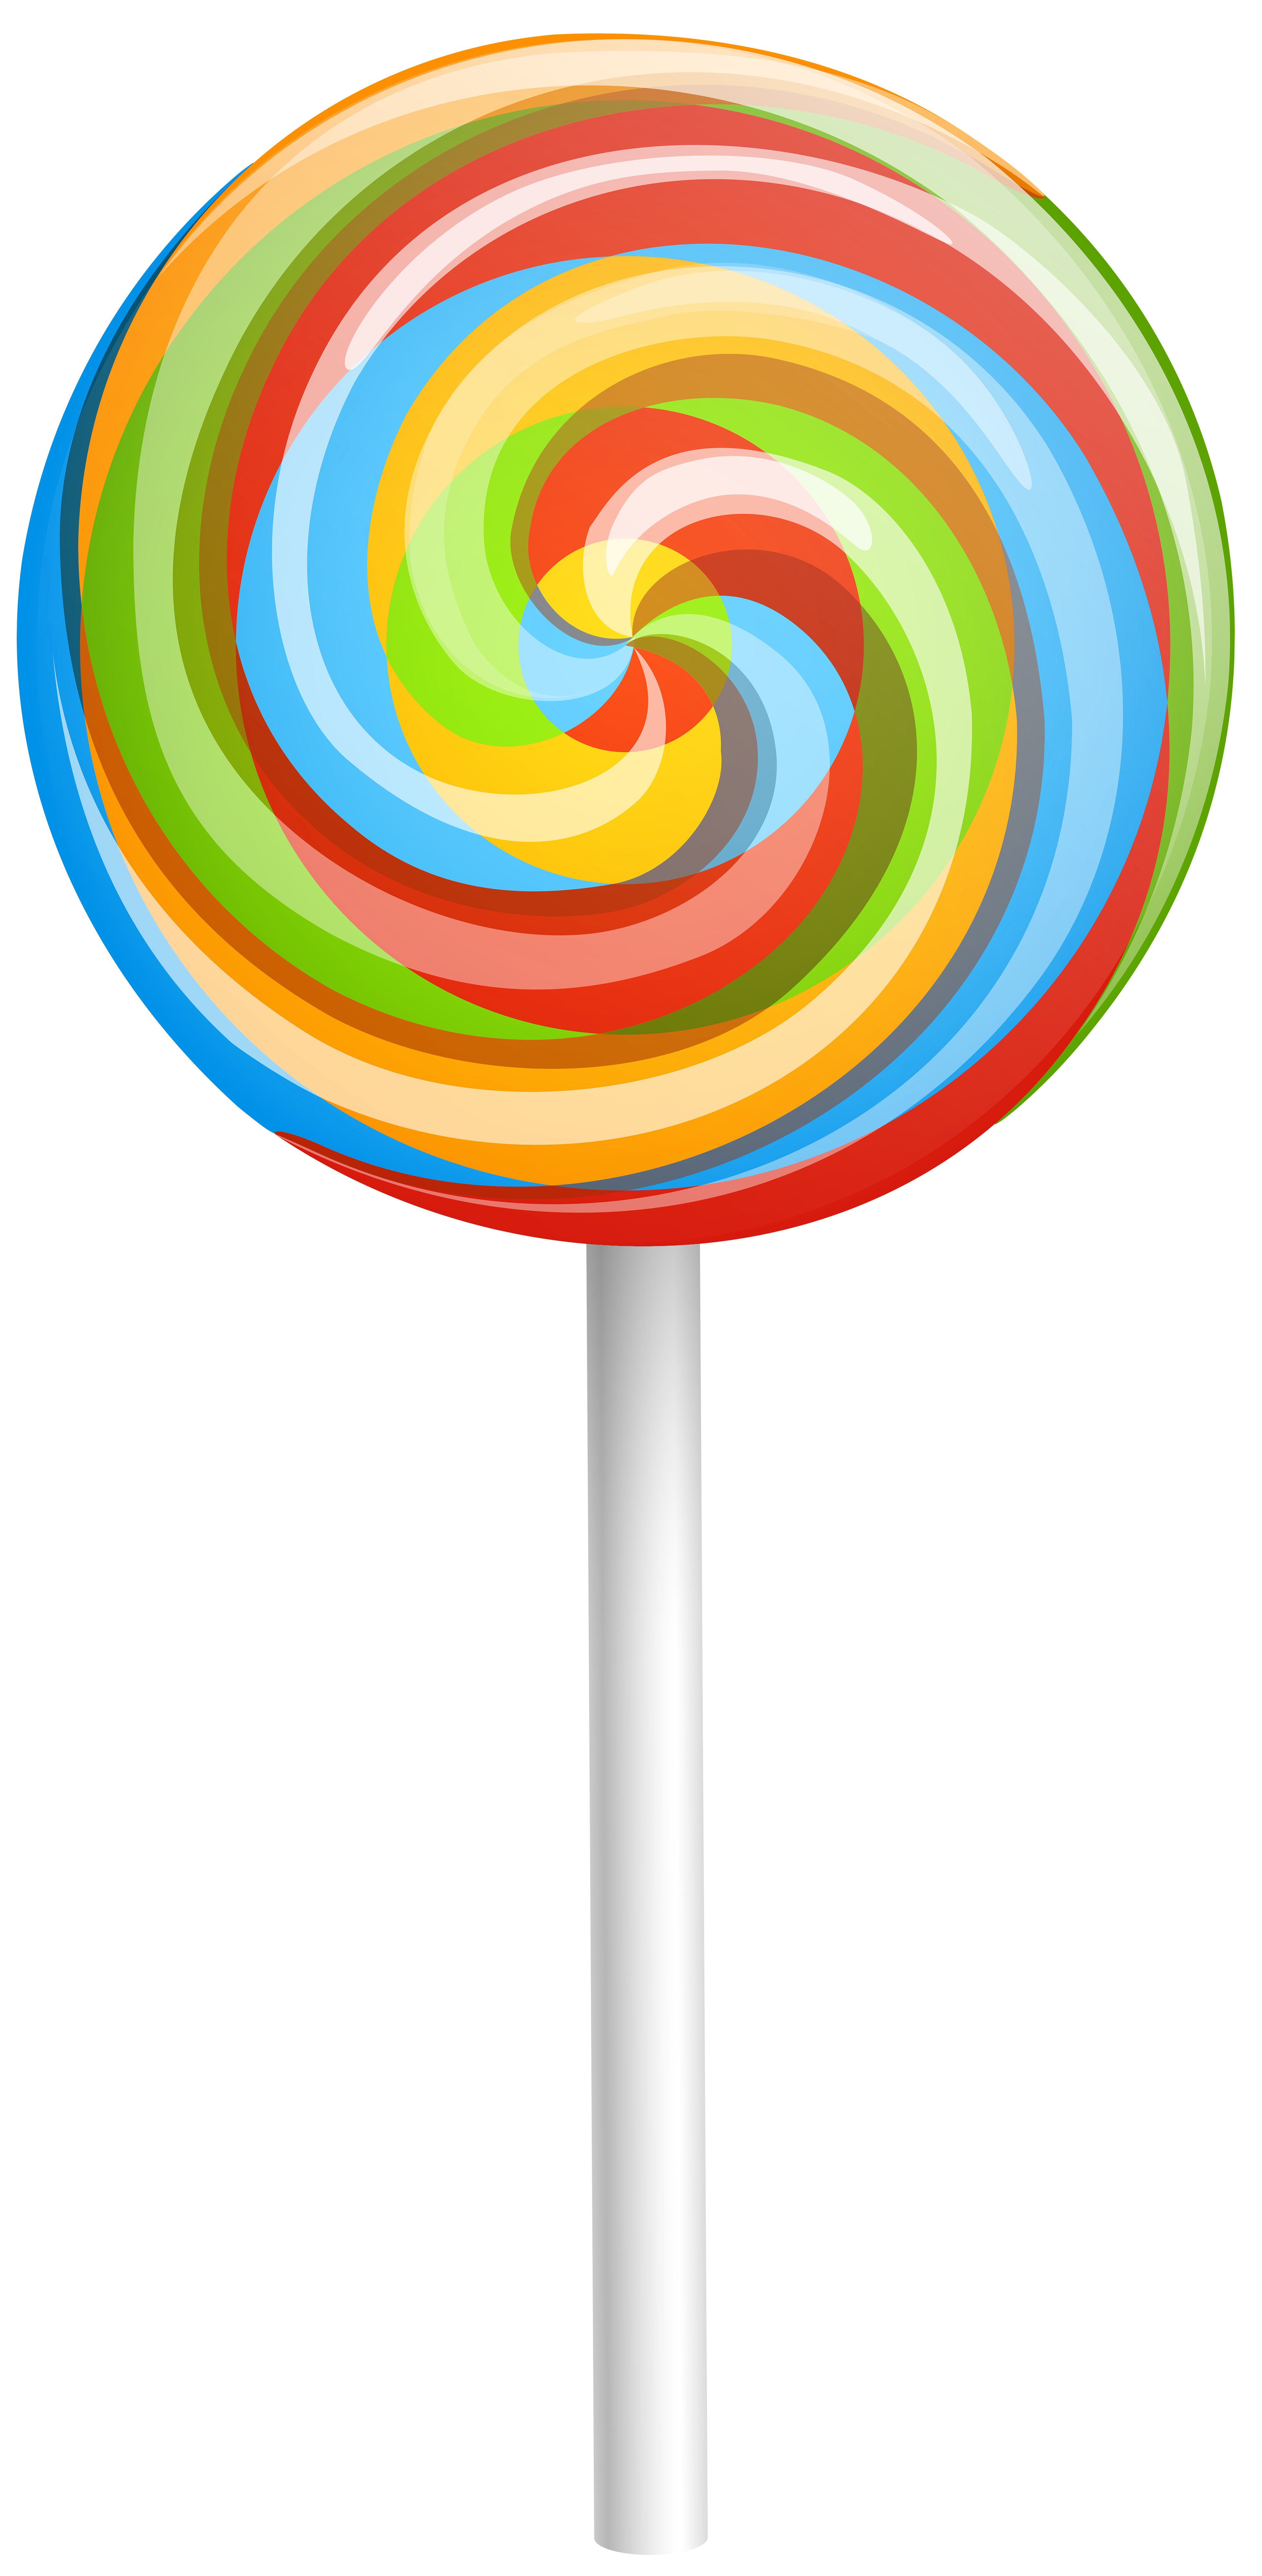 Lollipop clipart pinwheel. Row for free download